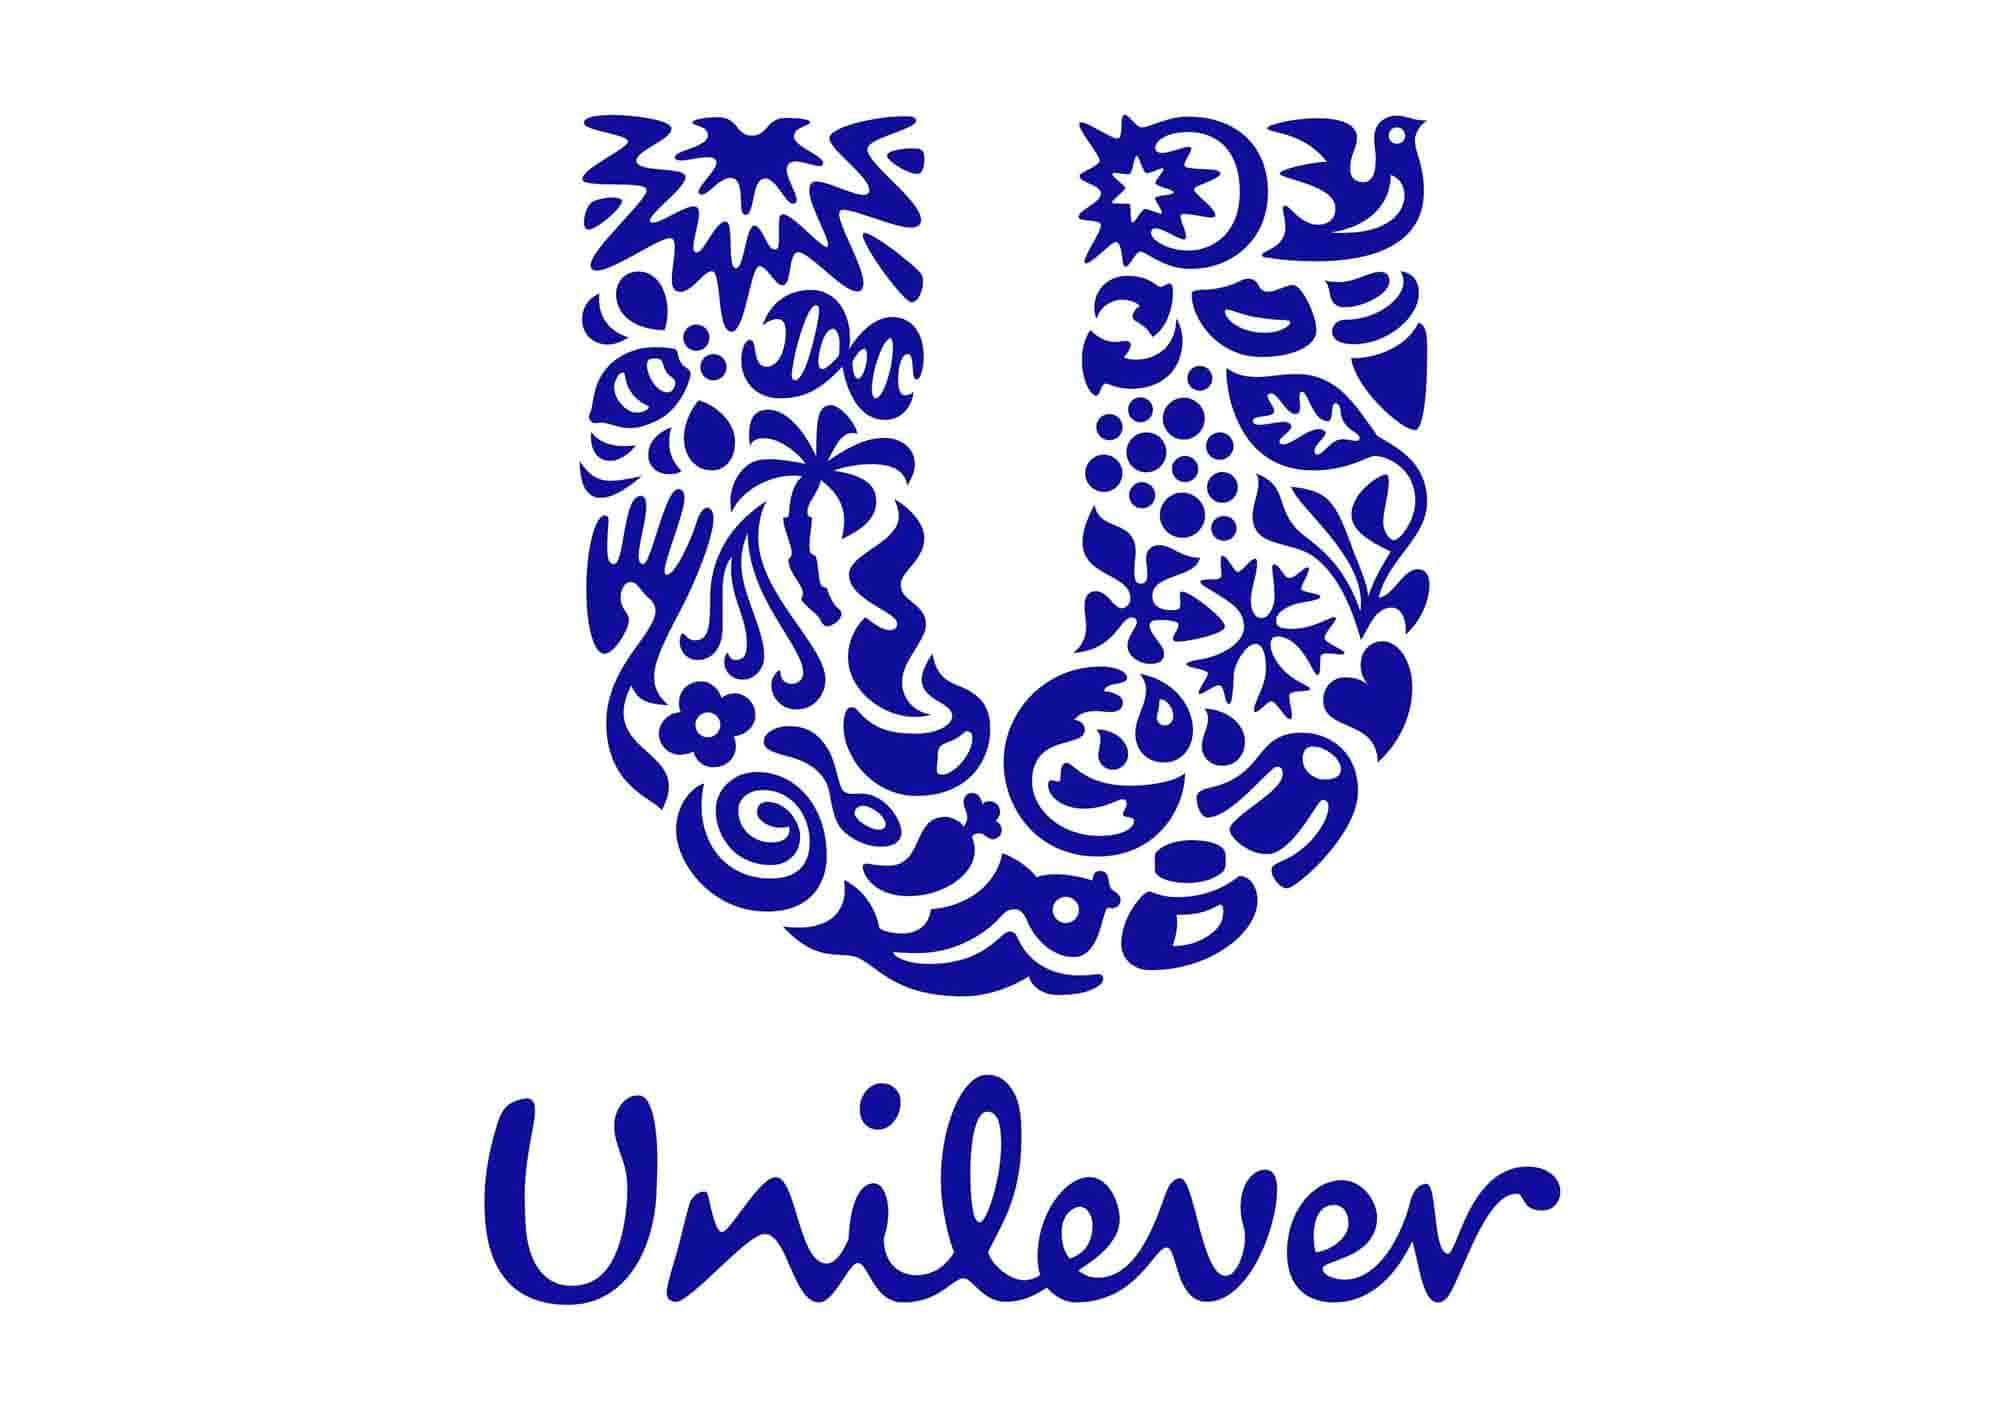 Video production liverpool - Unilever